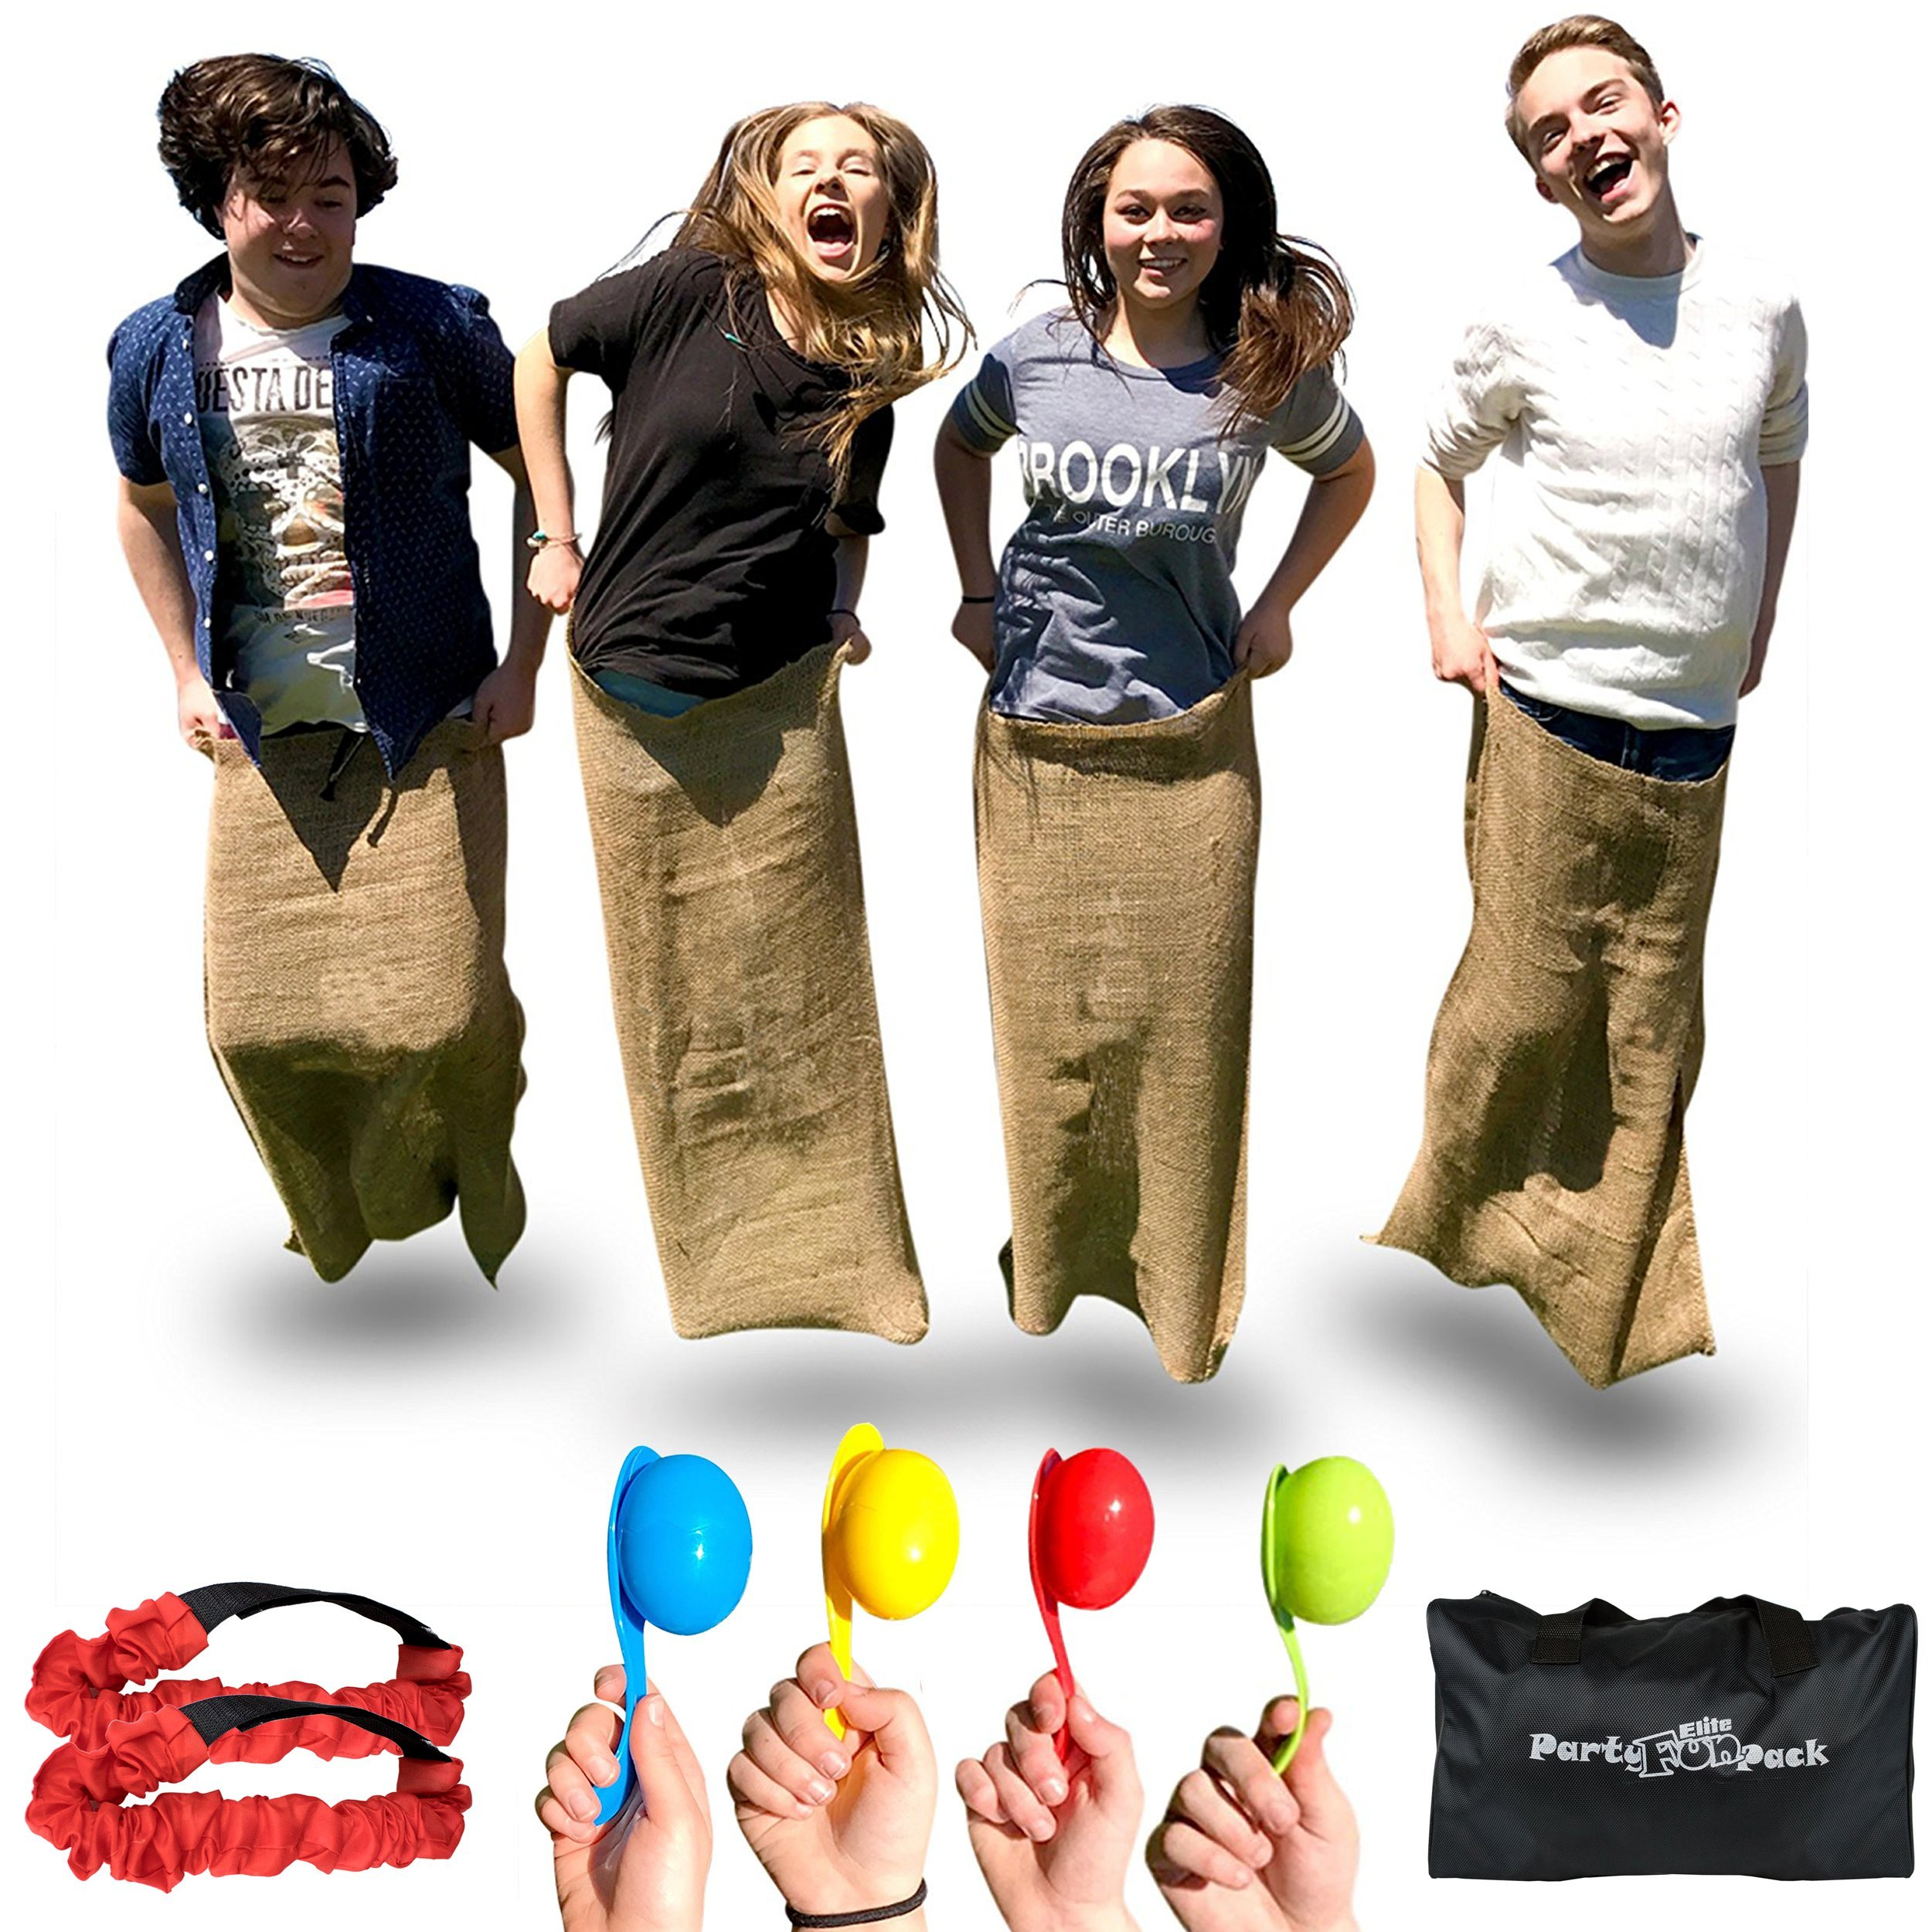 Elite Outdoor Games for Kids - Fun Backyard Games or Birthday Party Games for Kids - 4 Potato Sack Race Bags for Kids, 3 Legged Race Bands and Finish Your Field Day Games with an Egg and Spoon Race by Elite Sportz Equipment